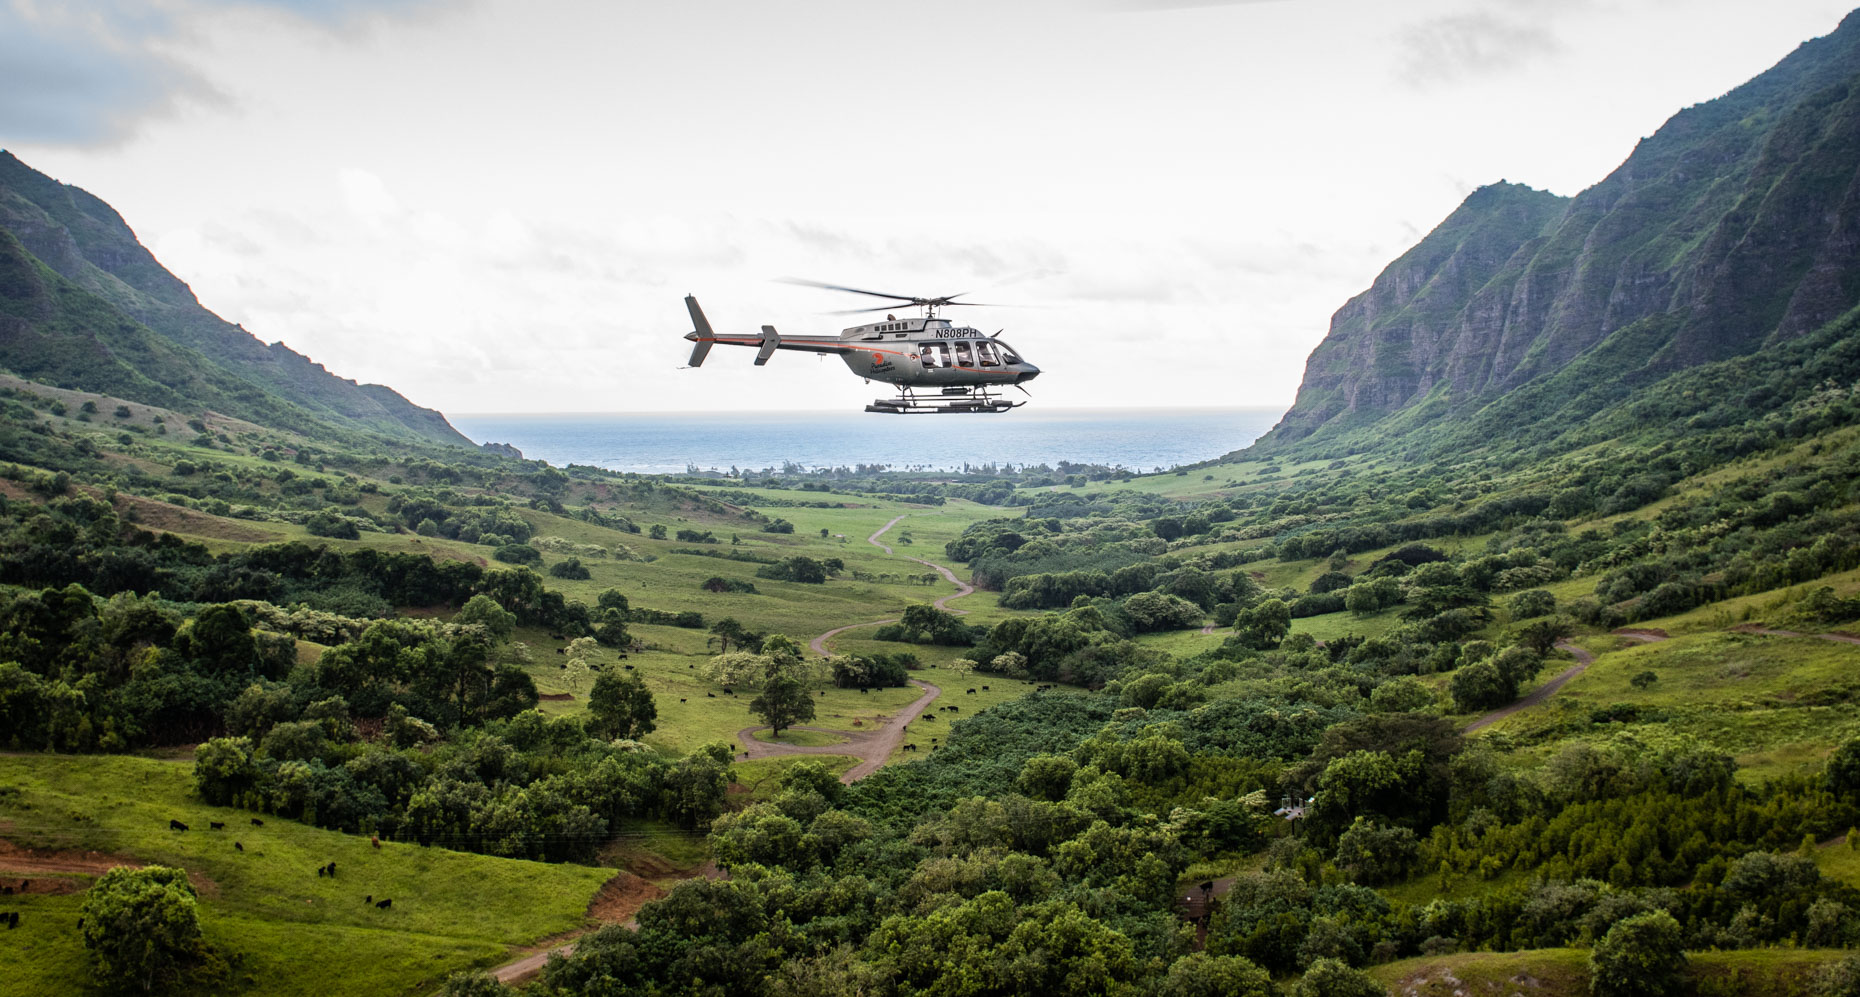 Will_Graham_Hawaii_Helicopter_Tour-4